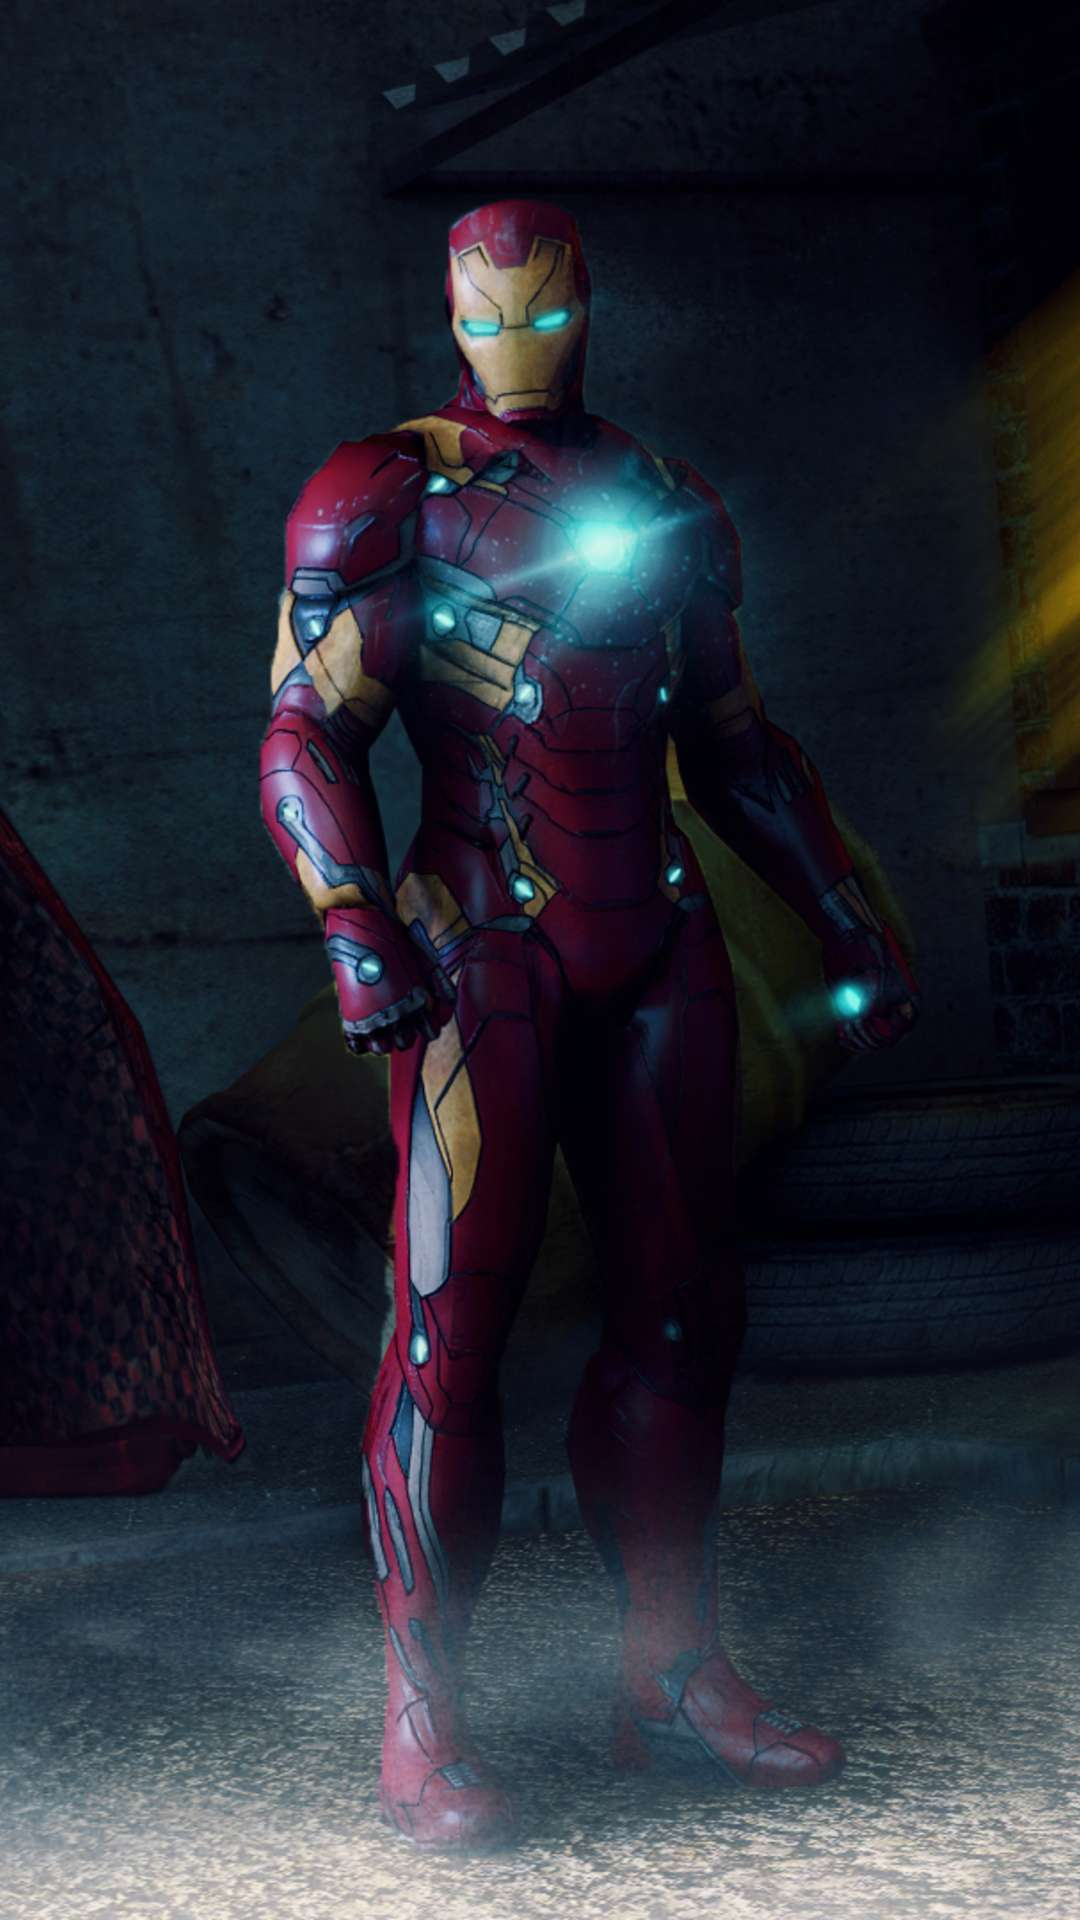 Iron Man Mark 46 iPhone Wallpaper